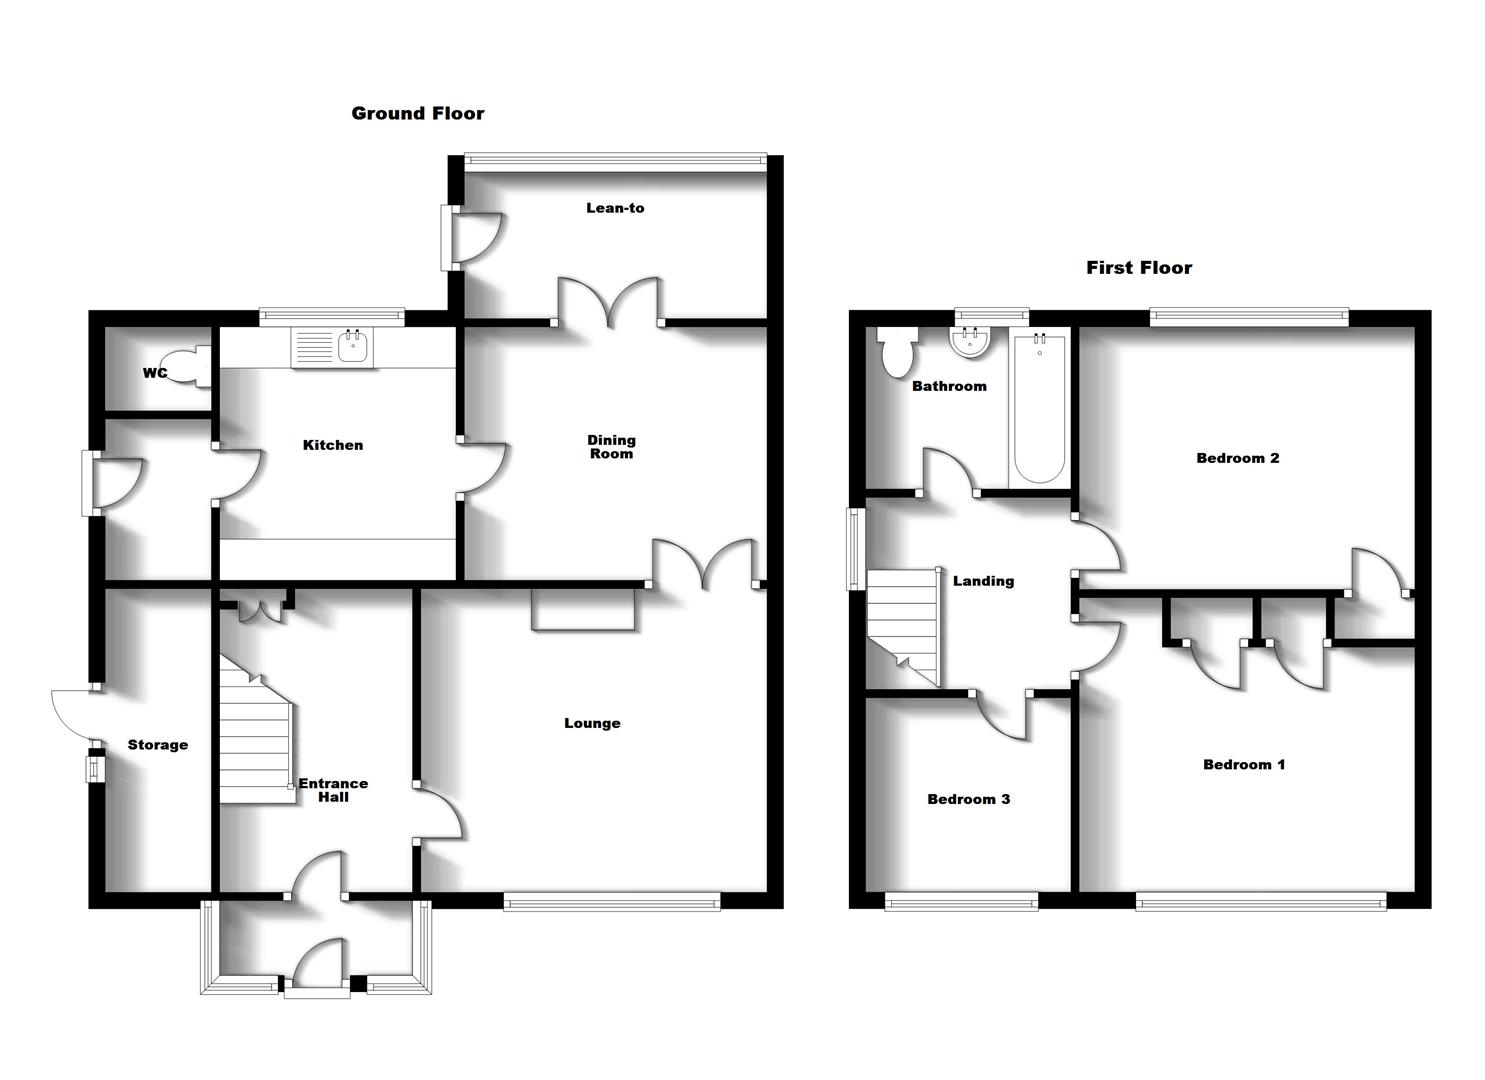 Floorplans For Saunton Road, Rugby